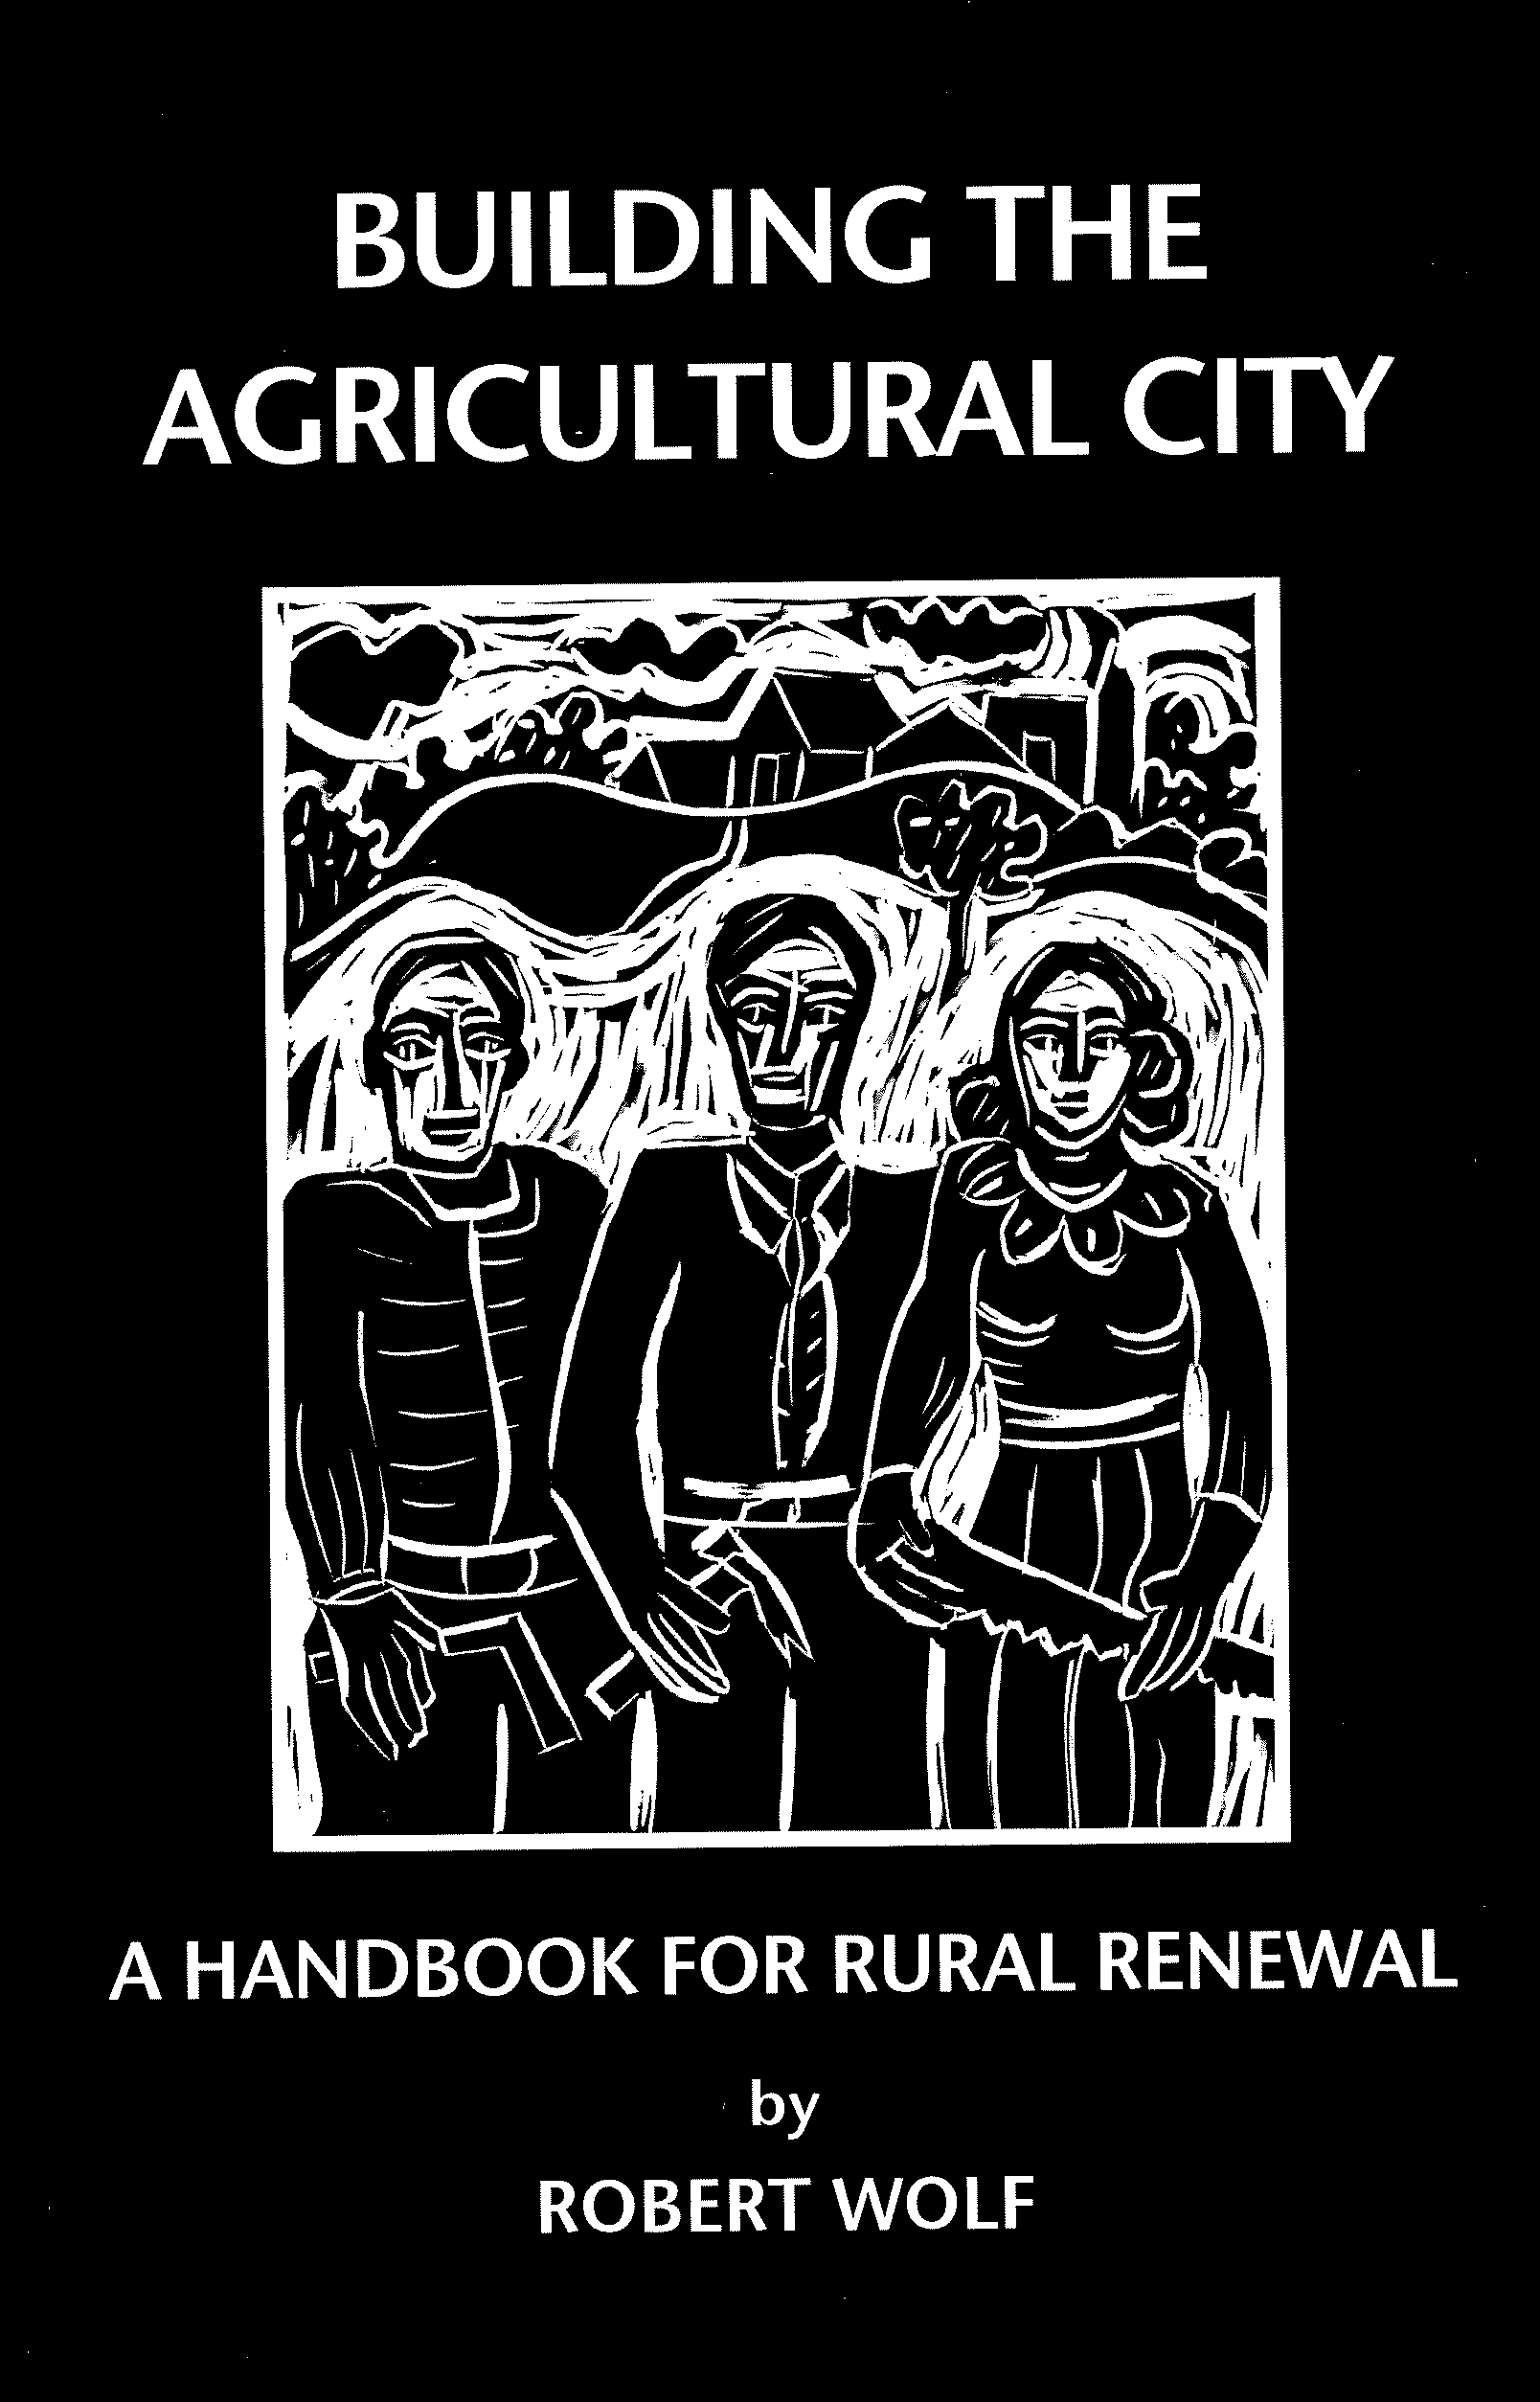 Book cover for *Building the Agricultural City: A Handbook for Rural Renewal* by Robert Wolf.